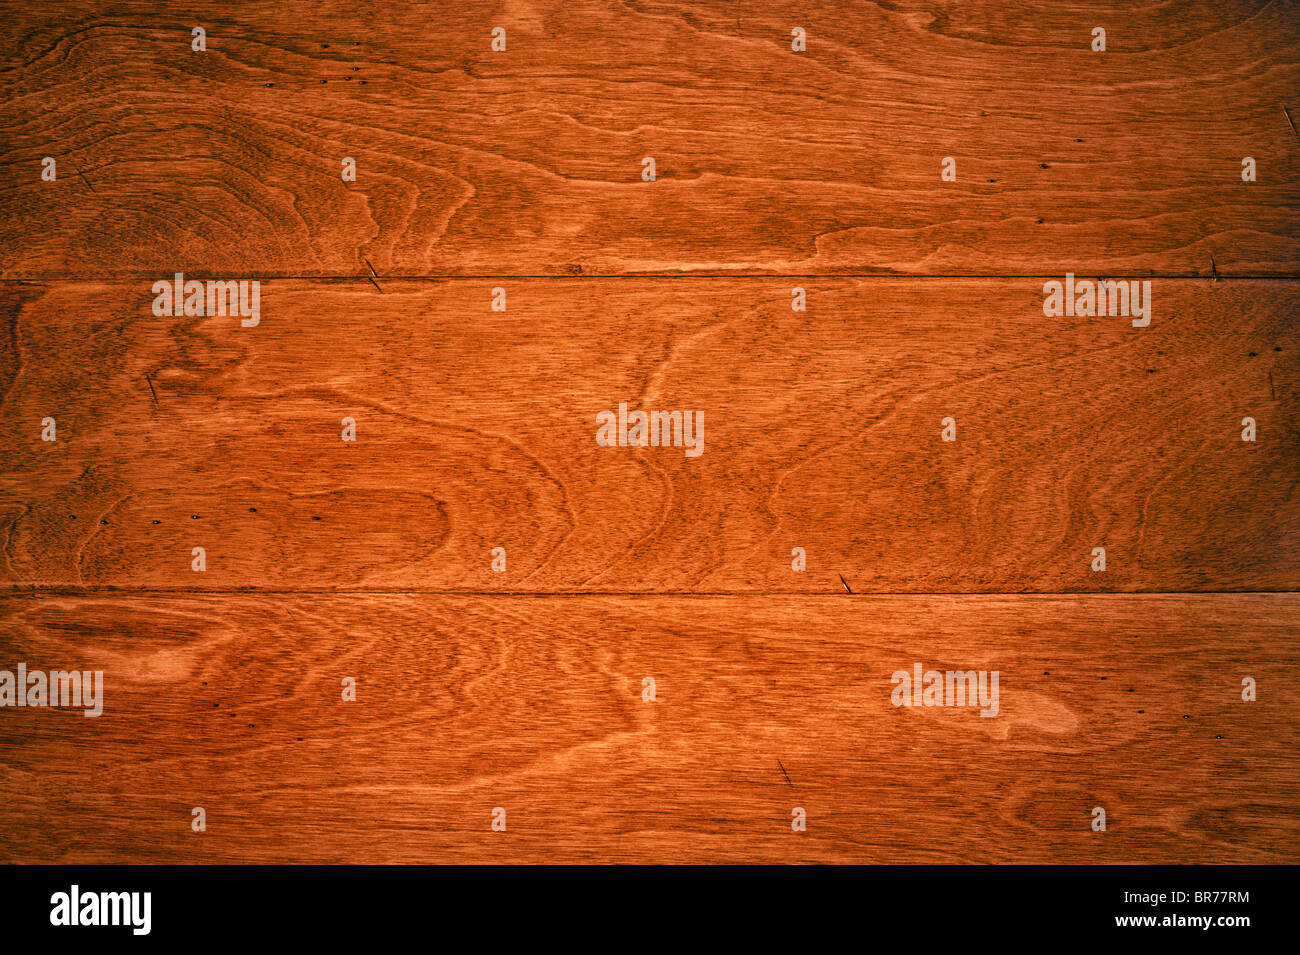 A beautiful deep, rich hardwood floor with its wood grain details for use as and background or appropriate housing - Stock Image